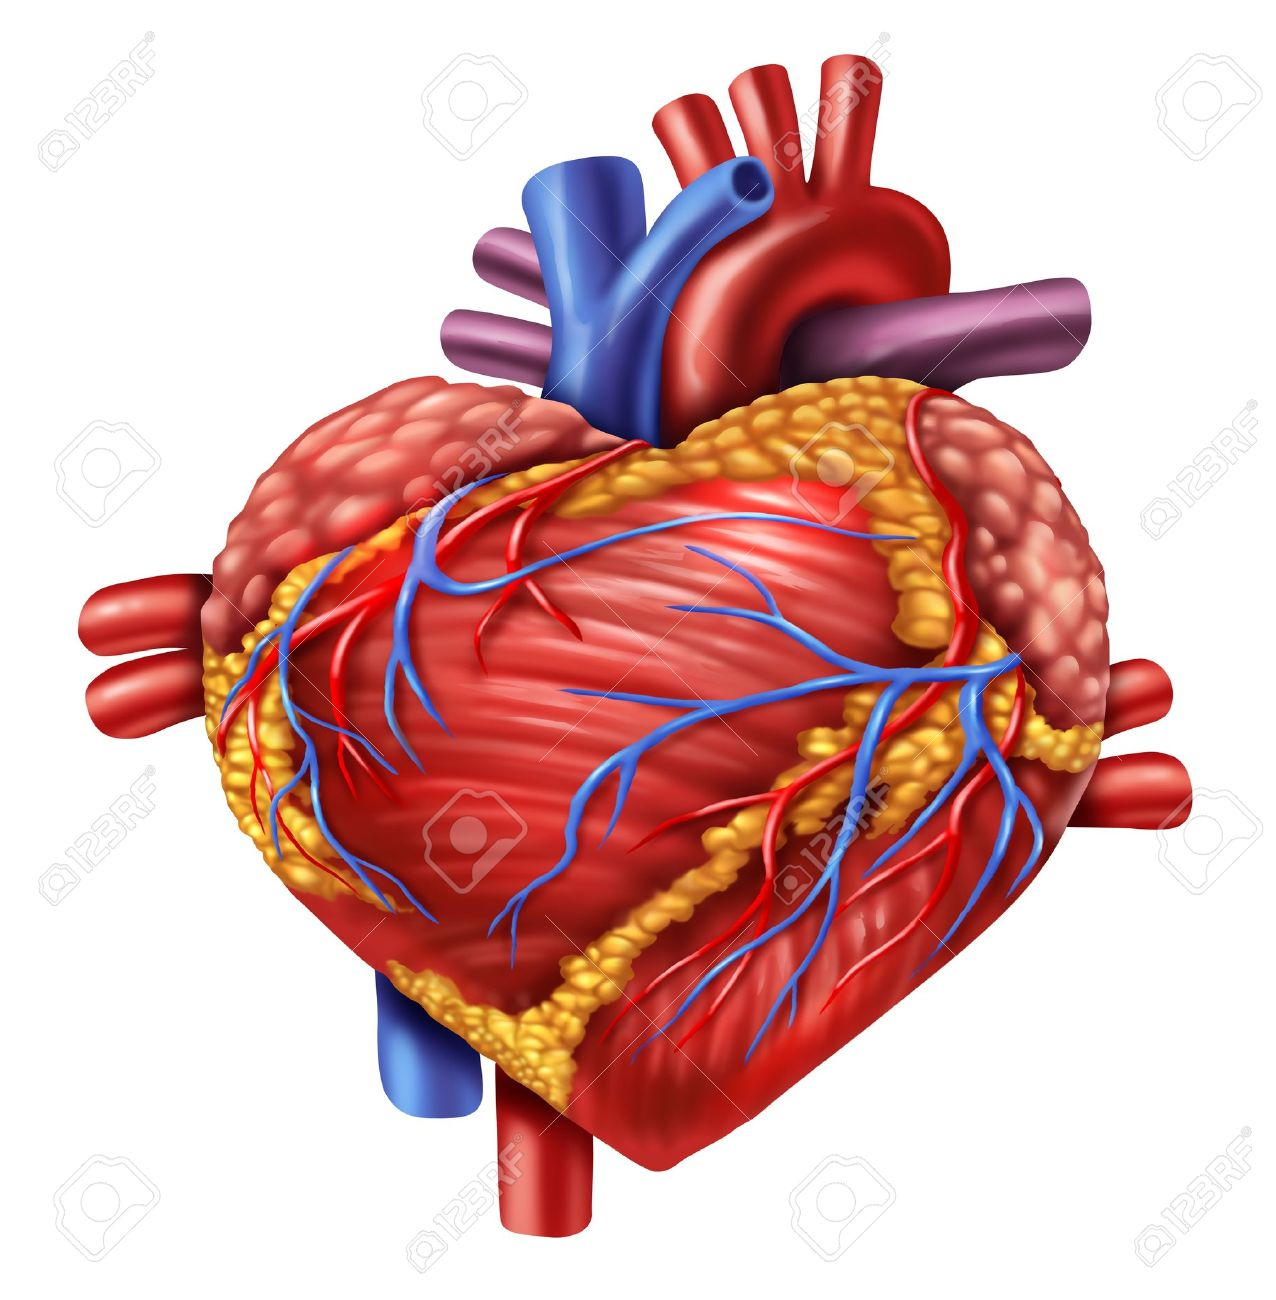 Human Heart In The Shape Of A Love Symbol Using The Organ From